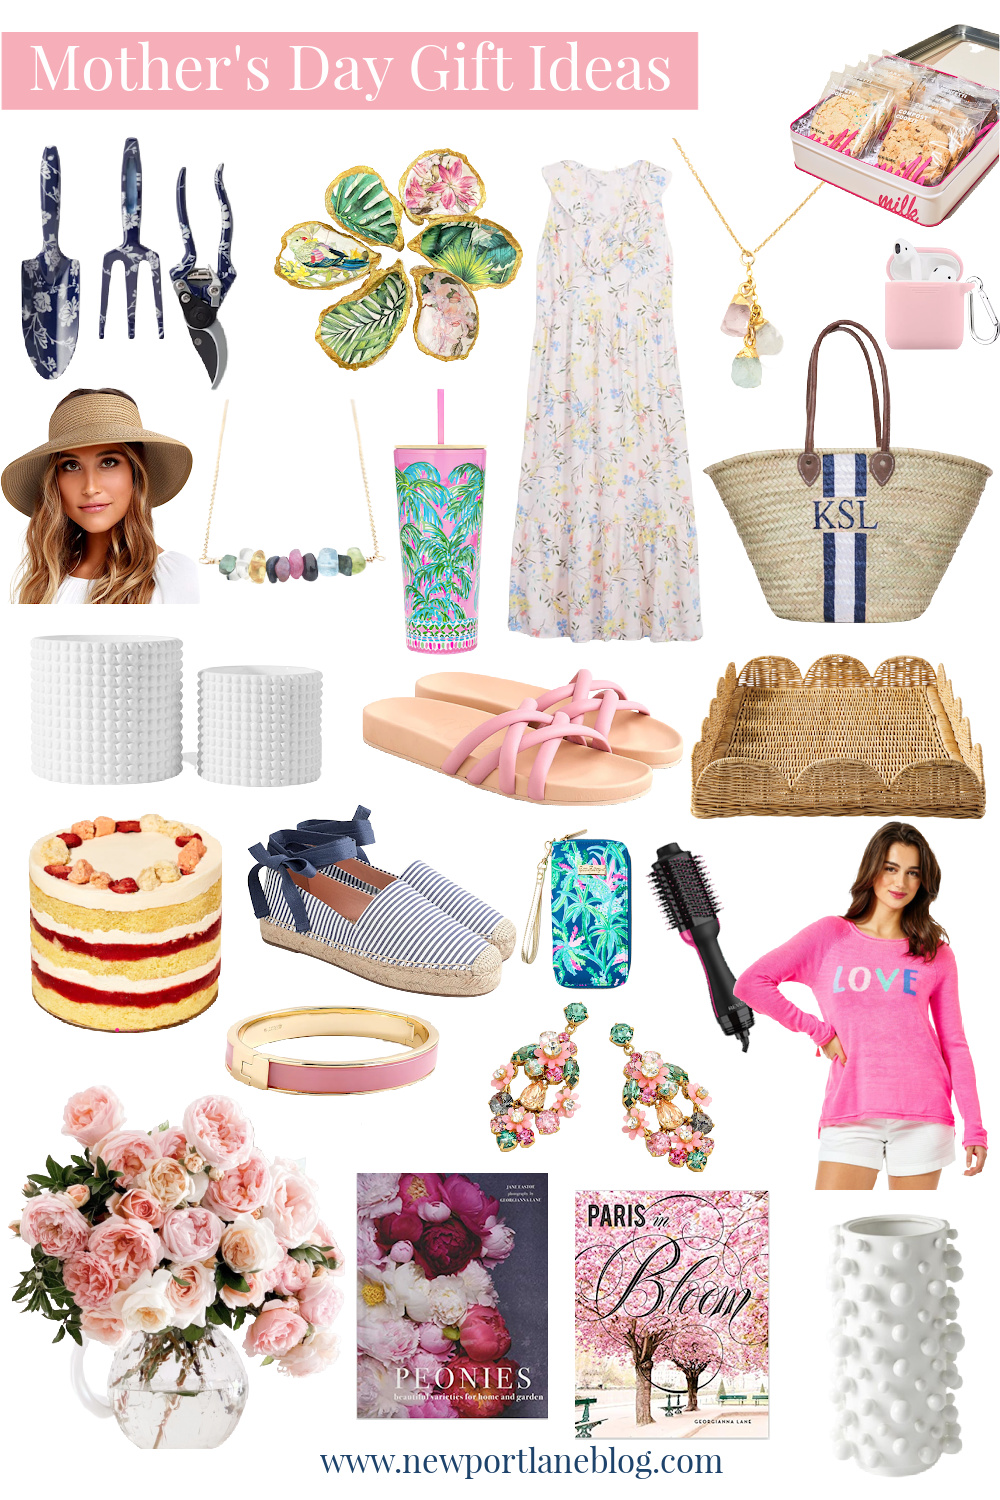 Mother's Day Gift Ideas - Mother's Day Gifts from Daughter - Mother's Day Gift Ideas Hard to Buy For - Mother's Day Gifts - Mother's Day Gift Ideas for Wife - Mother's Day Gift Ideas for Grandma